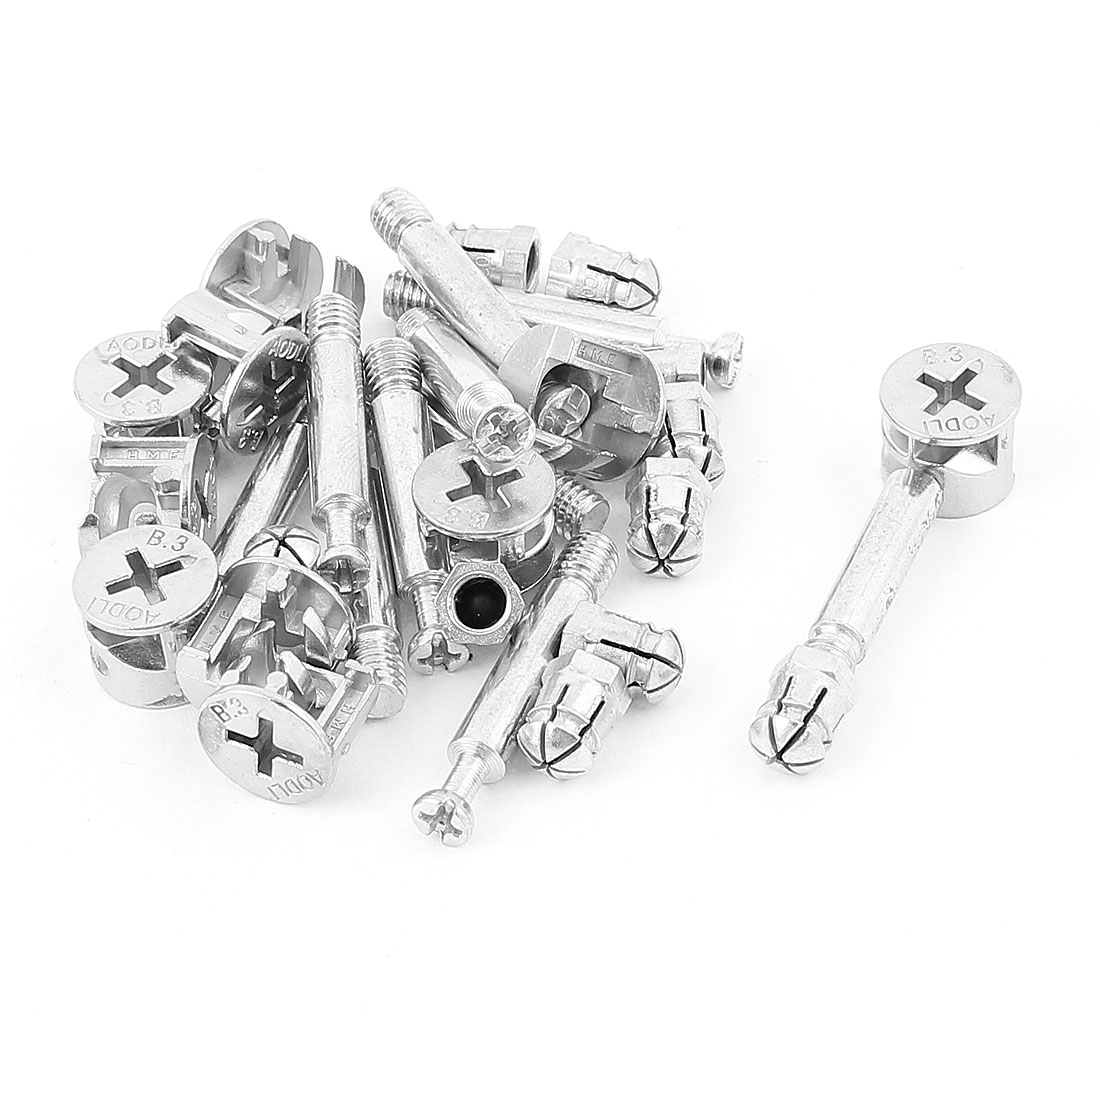 UXCELL Furniture Cabinet Fixing Screw Locking Cam Bolt Nut Fitting 10 Sets For Panel Office Connecting Of Your Panel Furniture